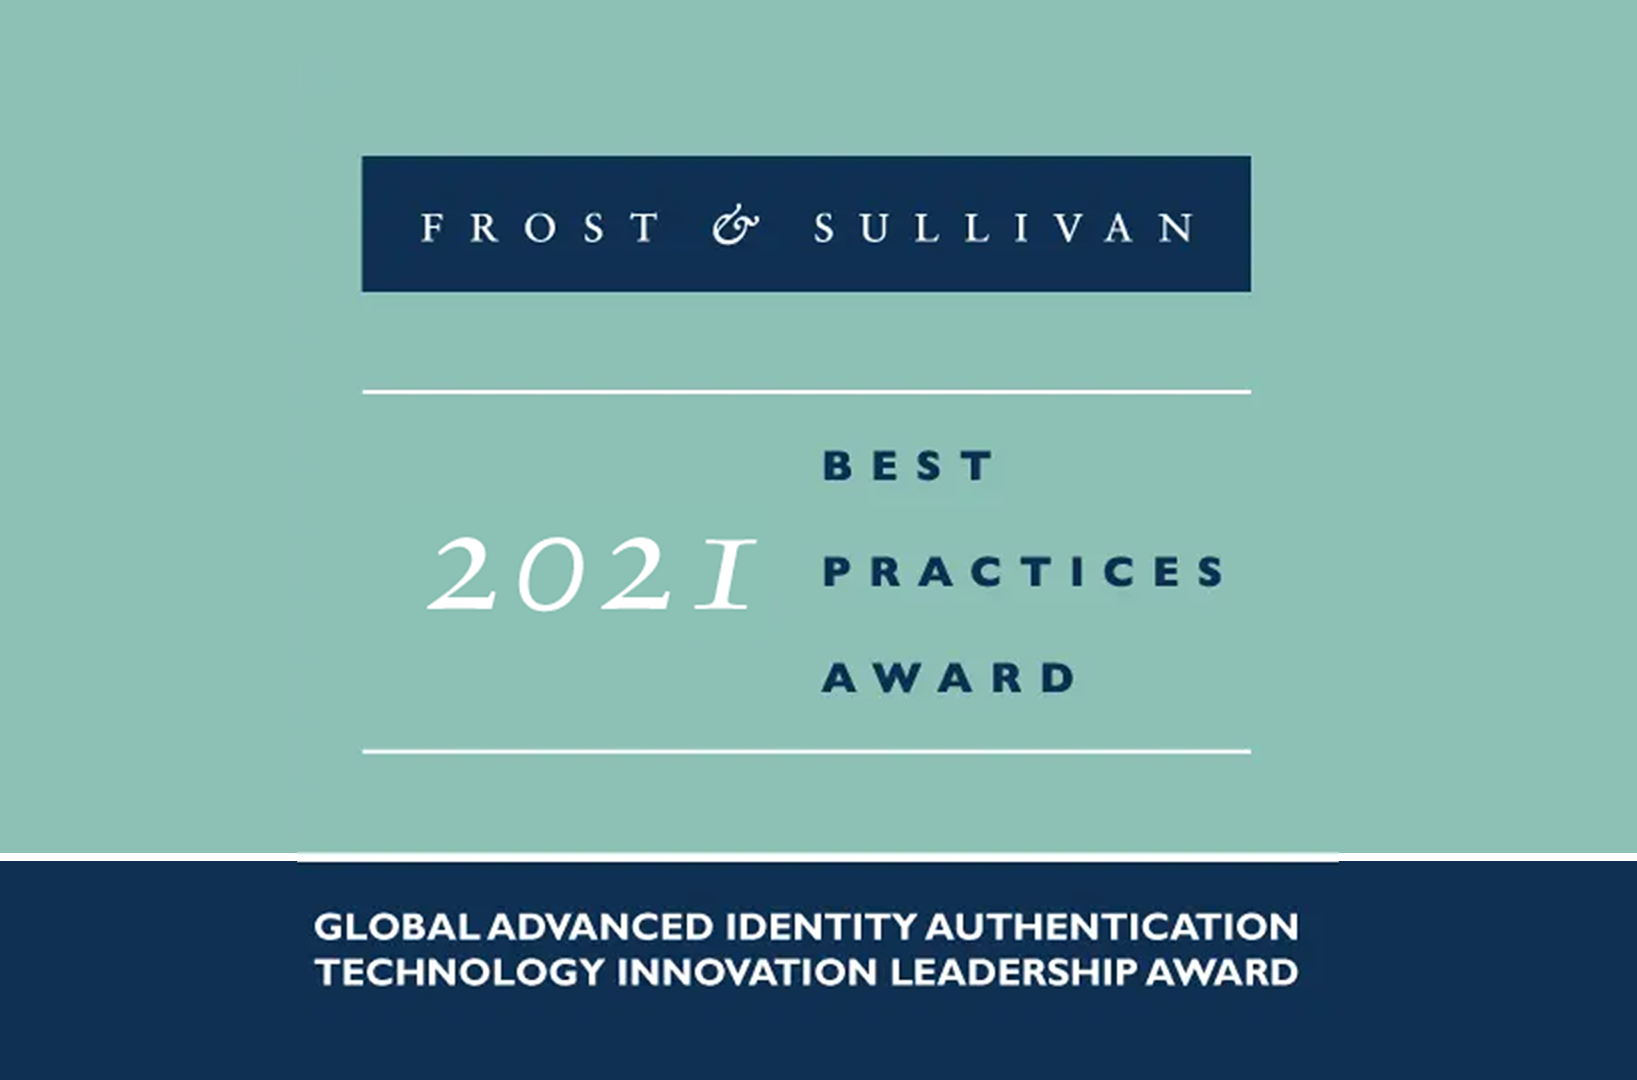 AU10TIX Applauded by Frost & Sullivan for Enhancing the Customer Onboarding Process with Its AI-powered Identity Management Solution